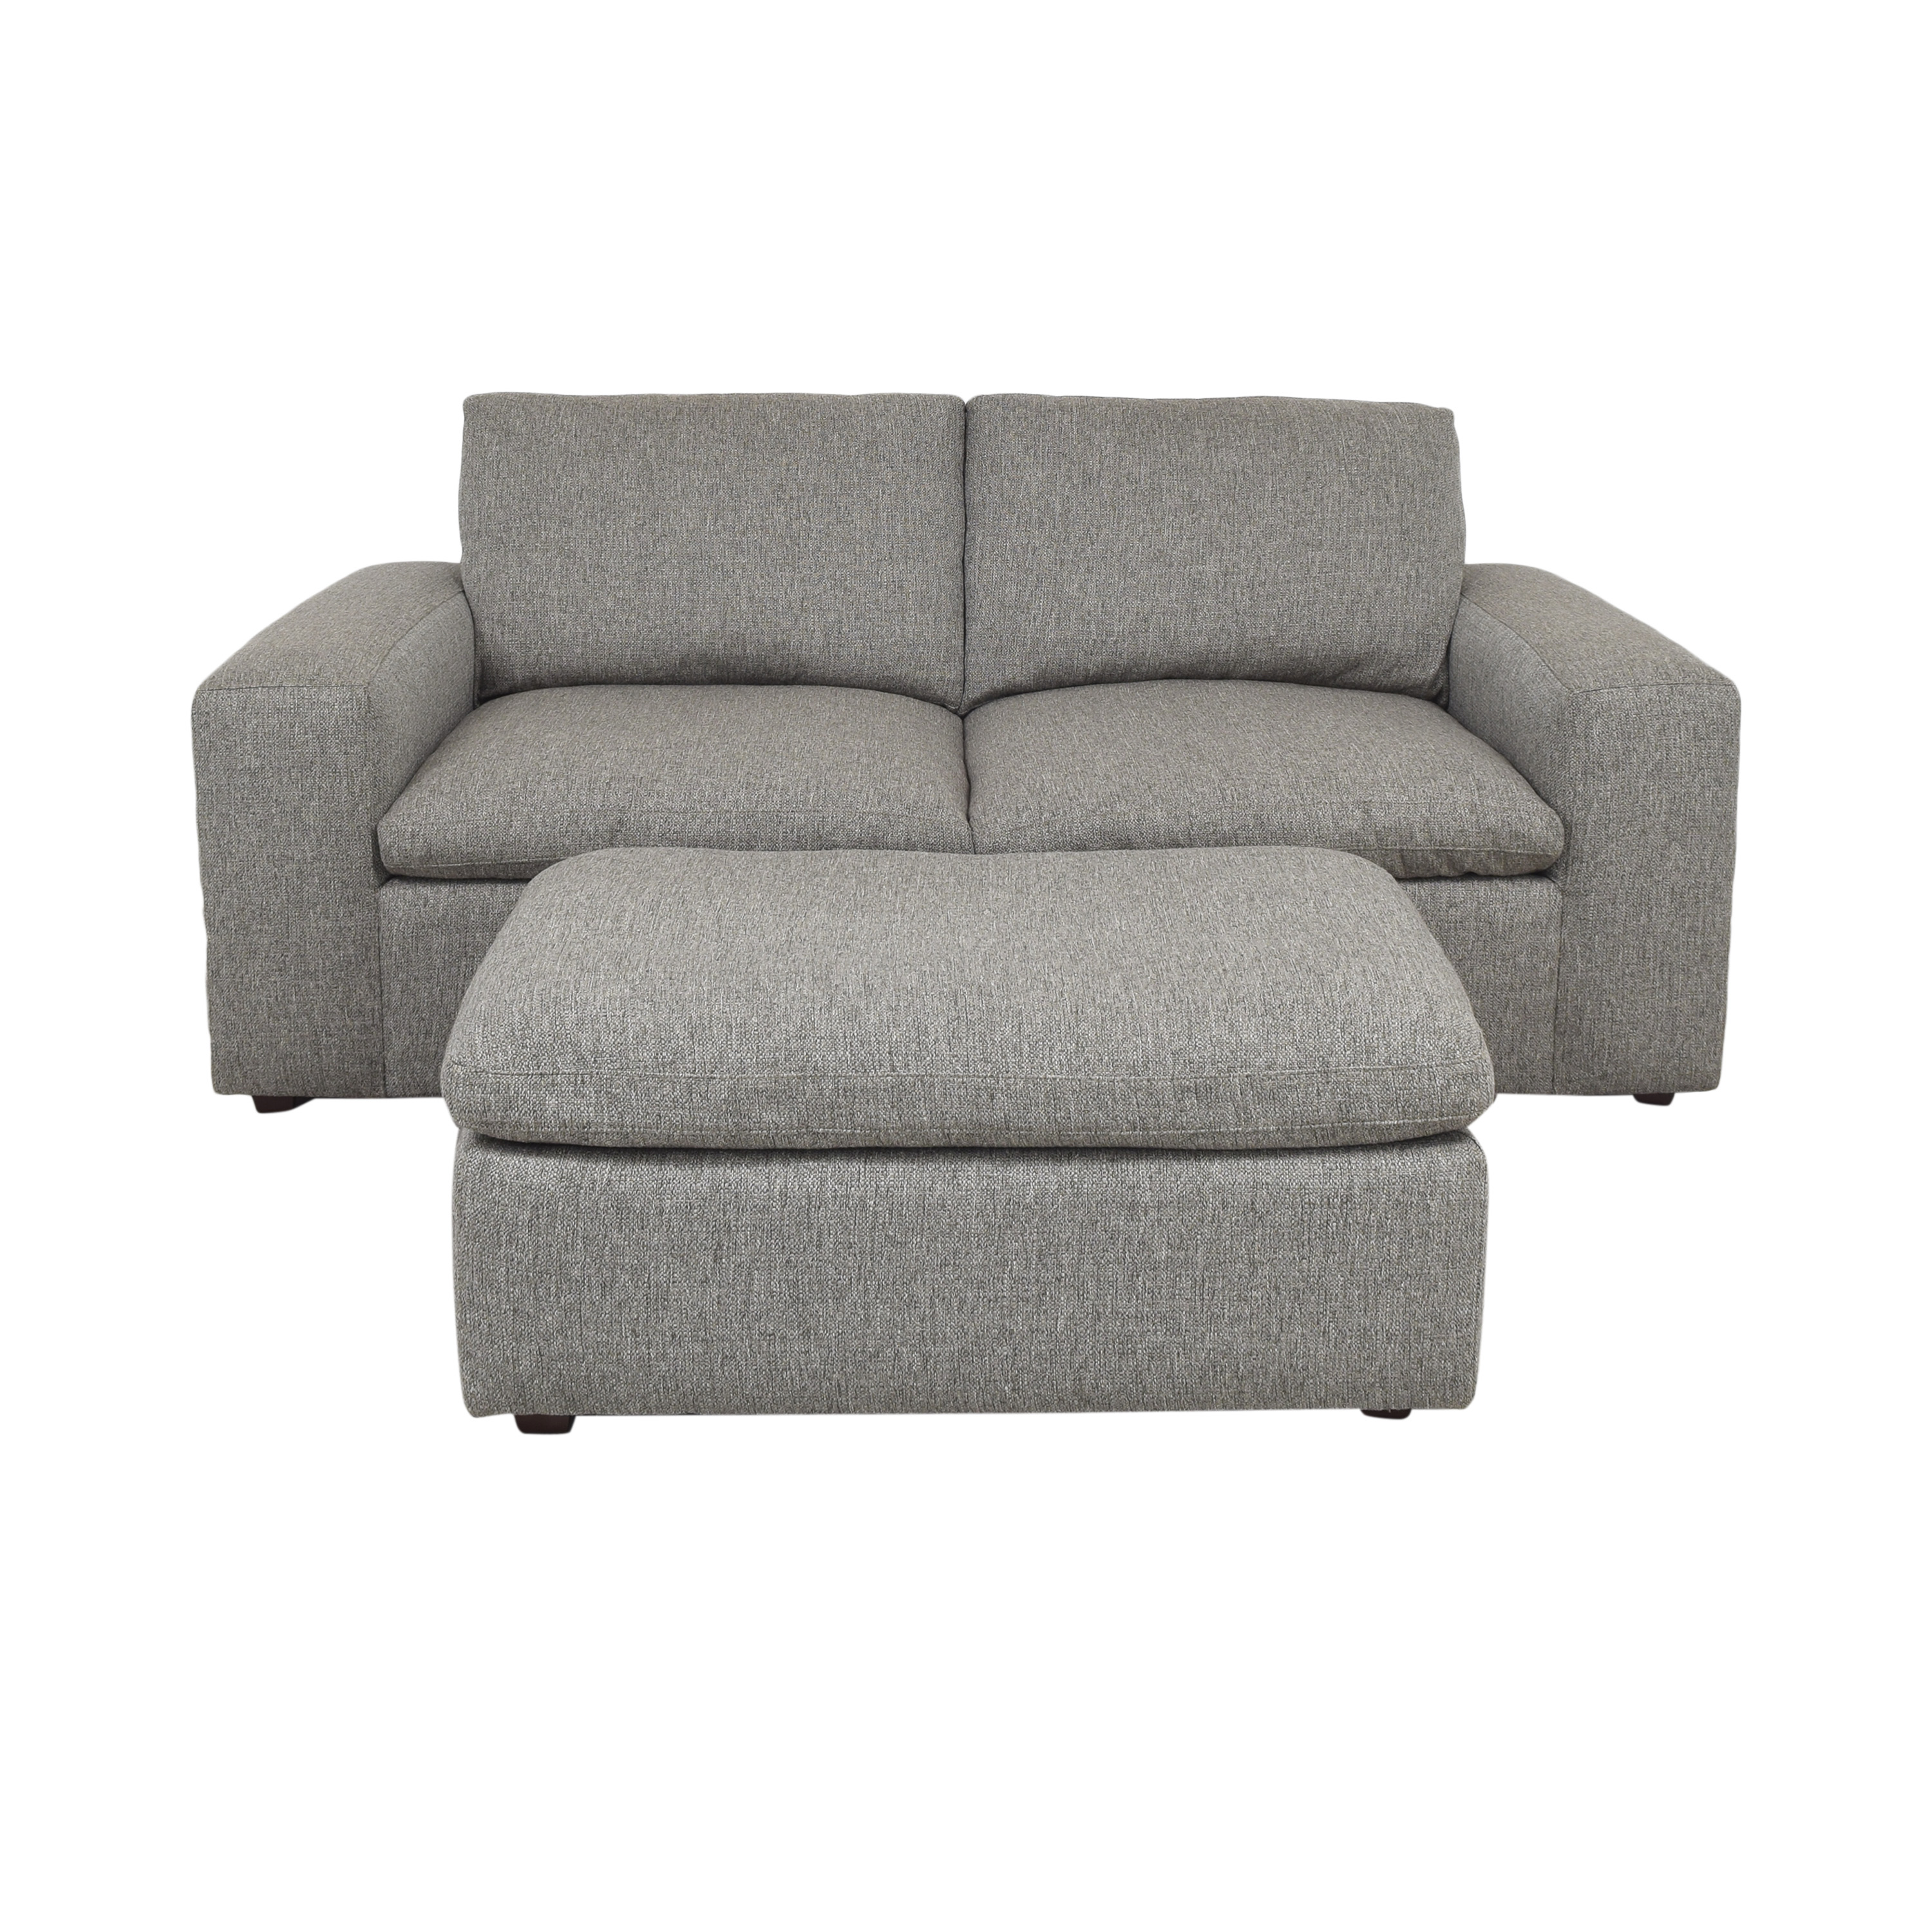 Modern Two Cushion Sofa with Ottoman second hand